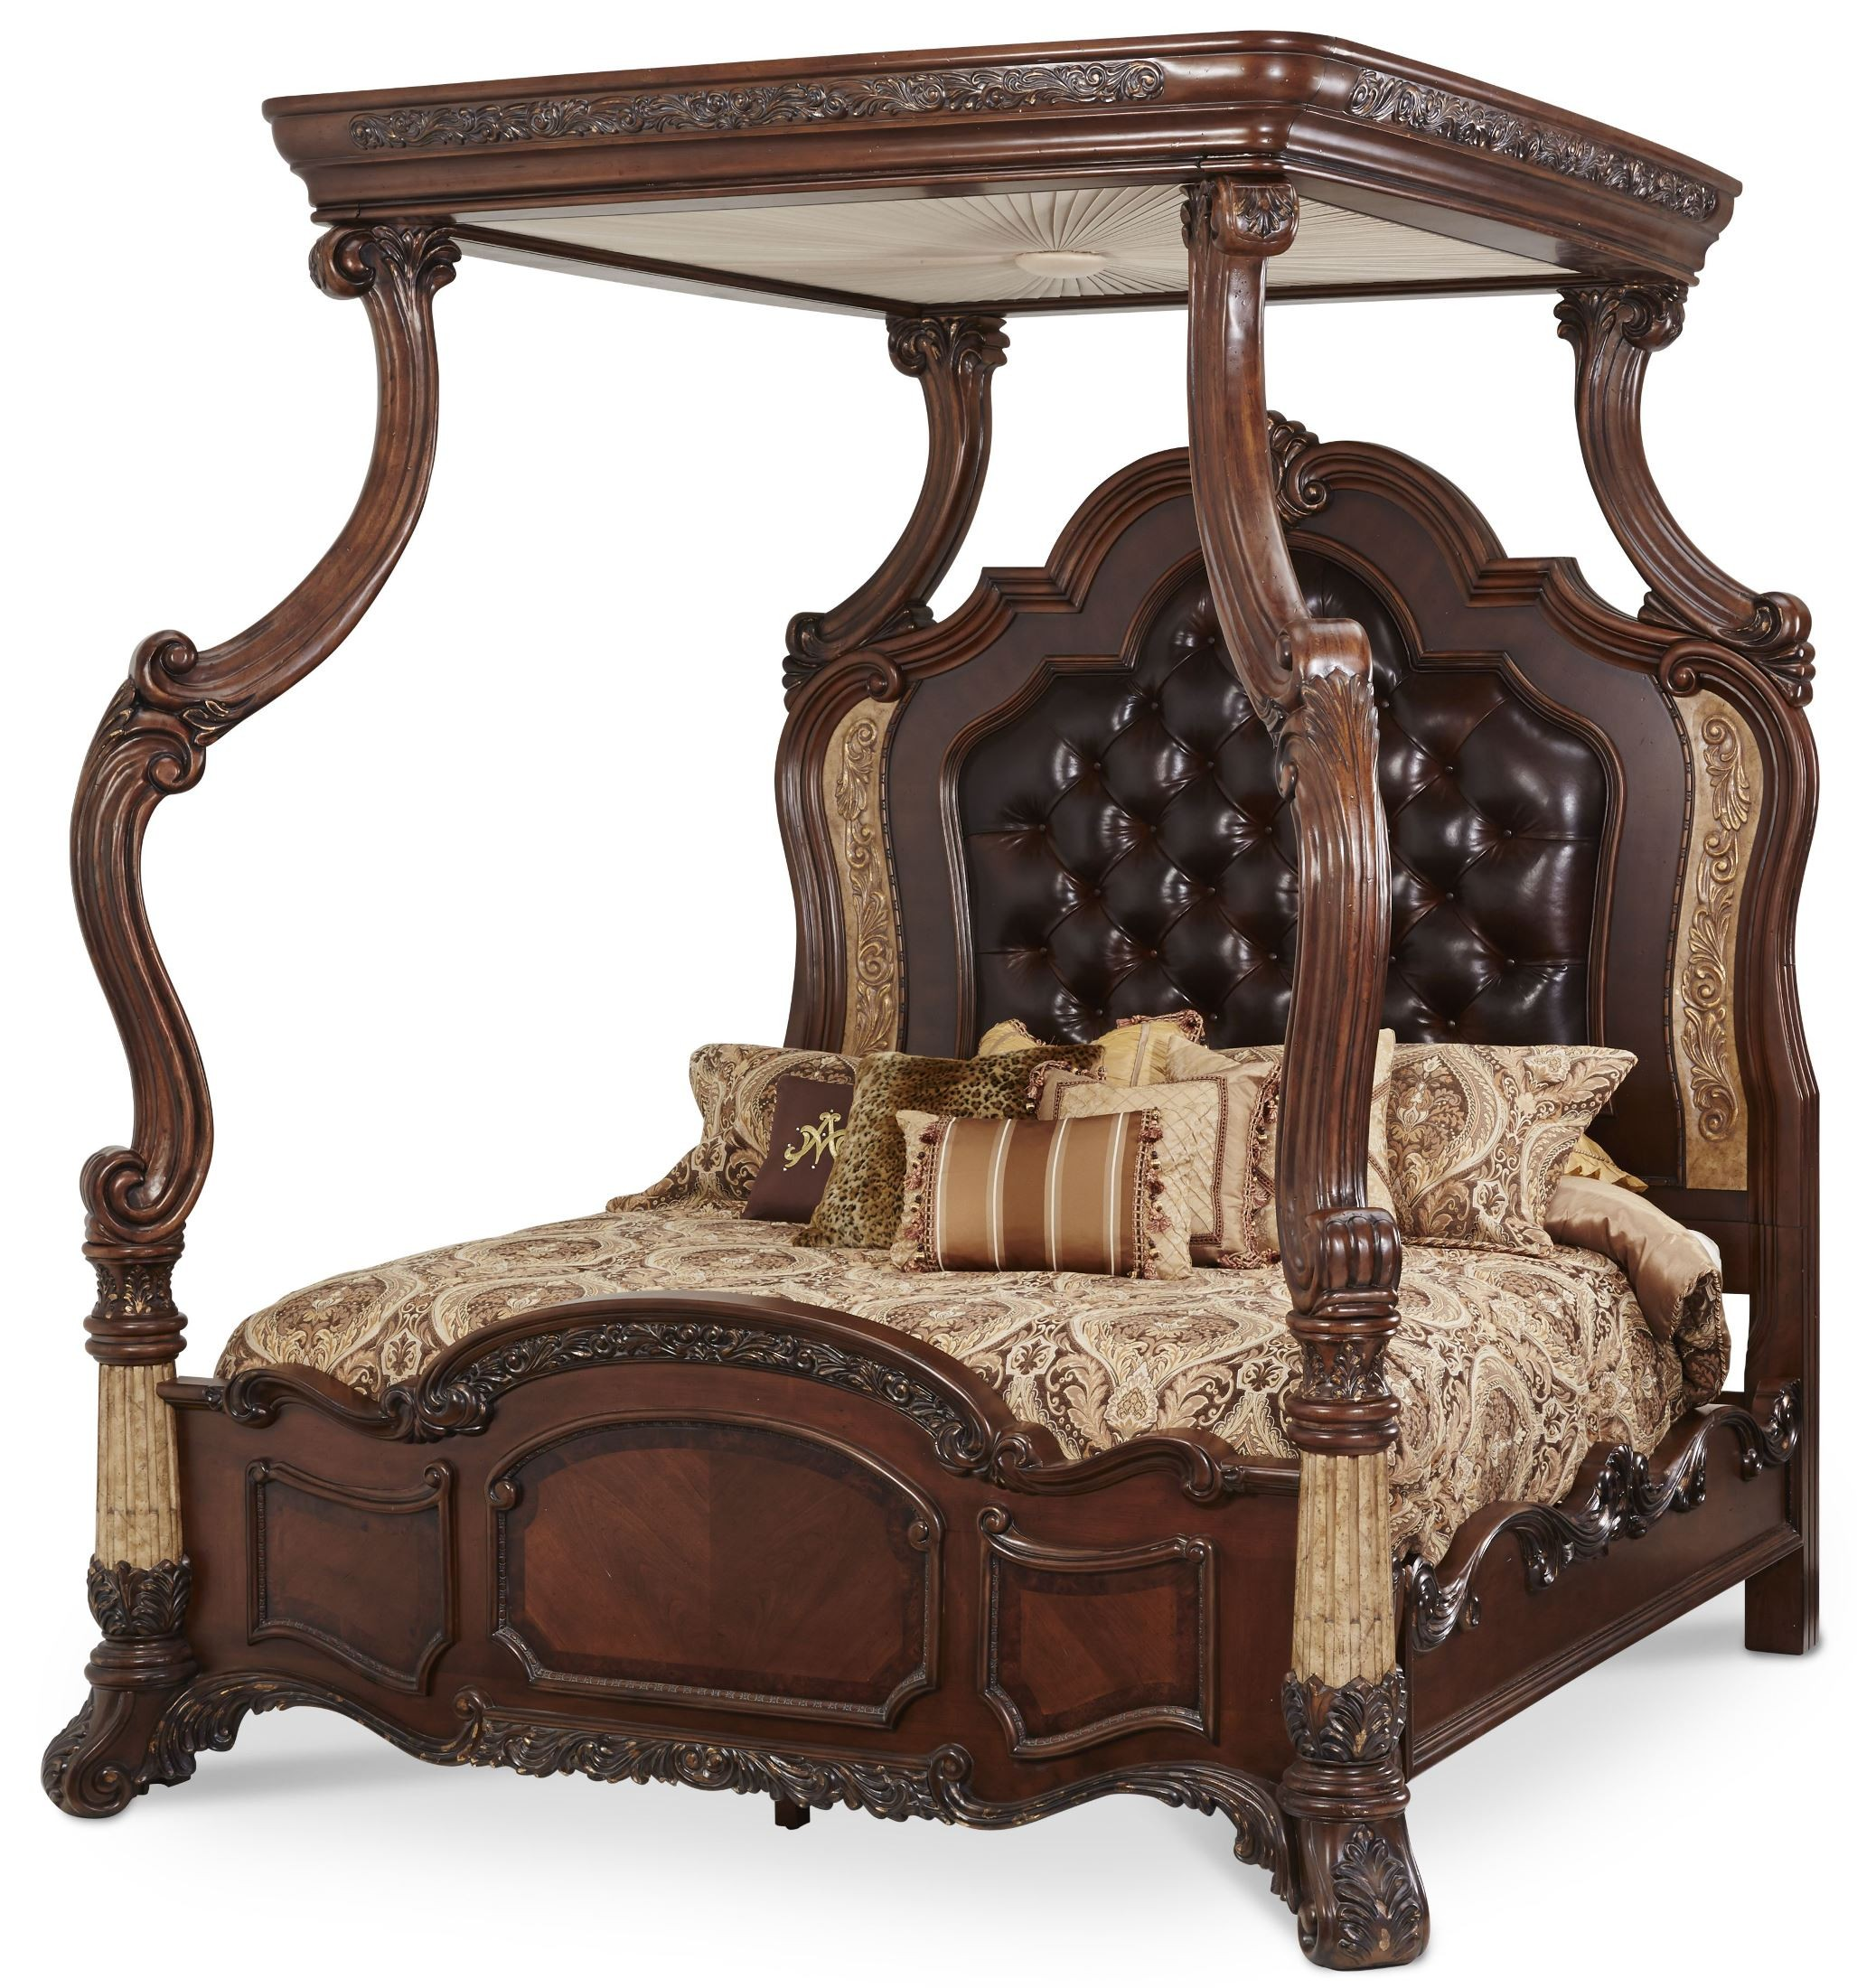 Victoria Palace Canopy Bedroom Set from Aico EKBED4 29